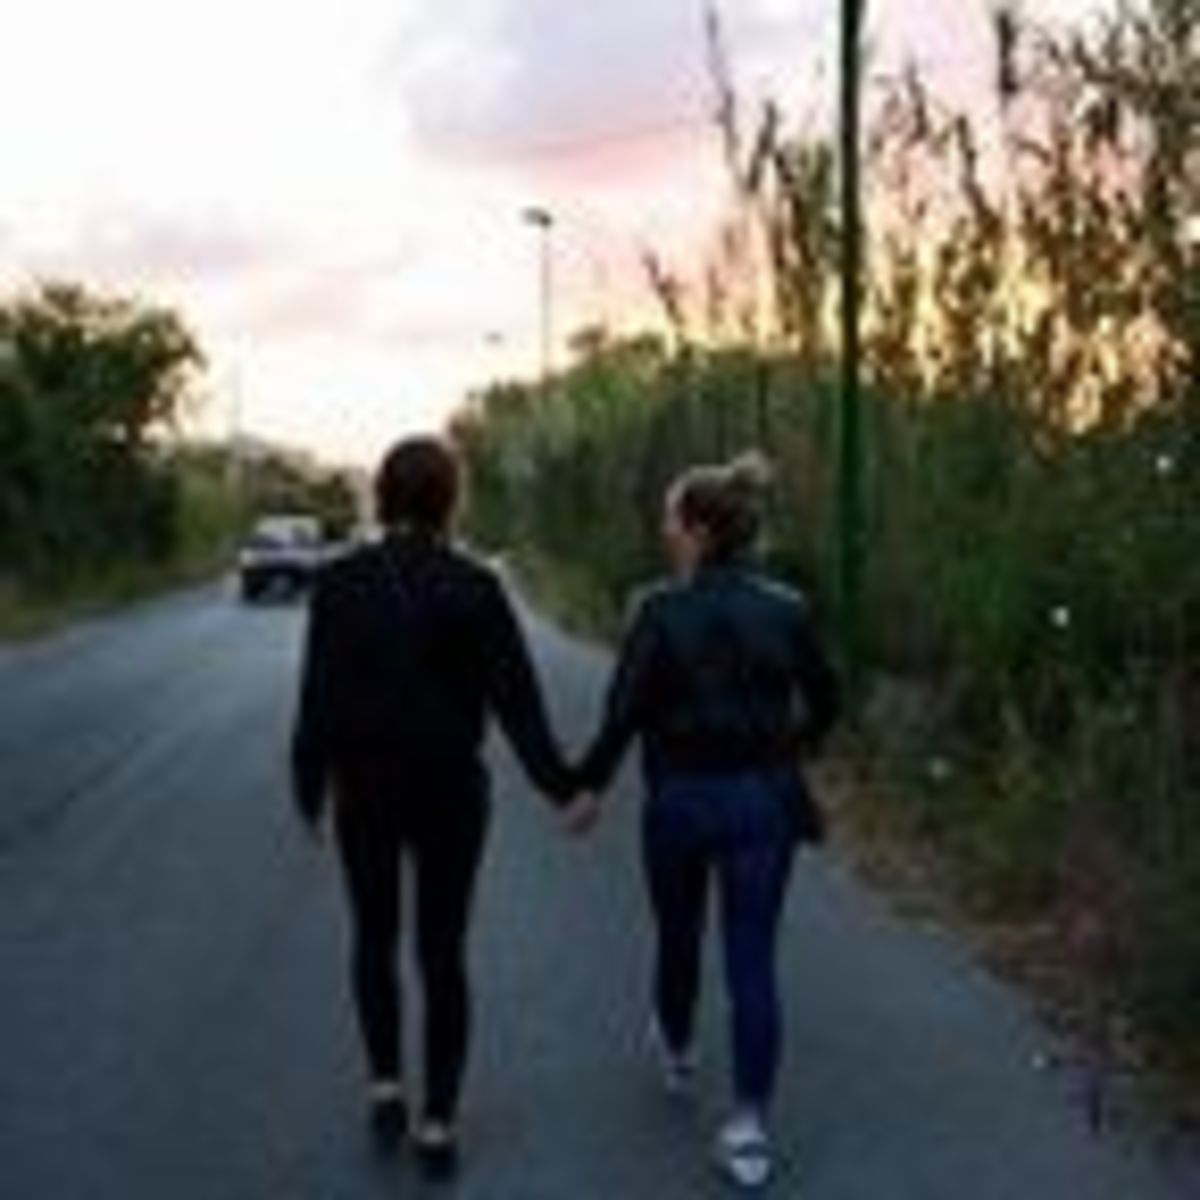 Where Are All the Bisexuals Hiding? | Psychology Today Ireland